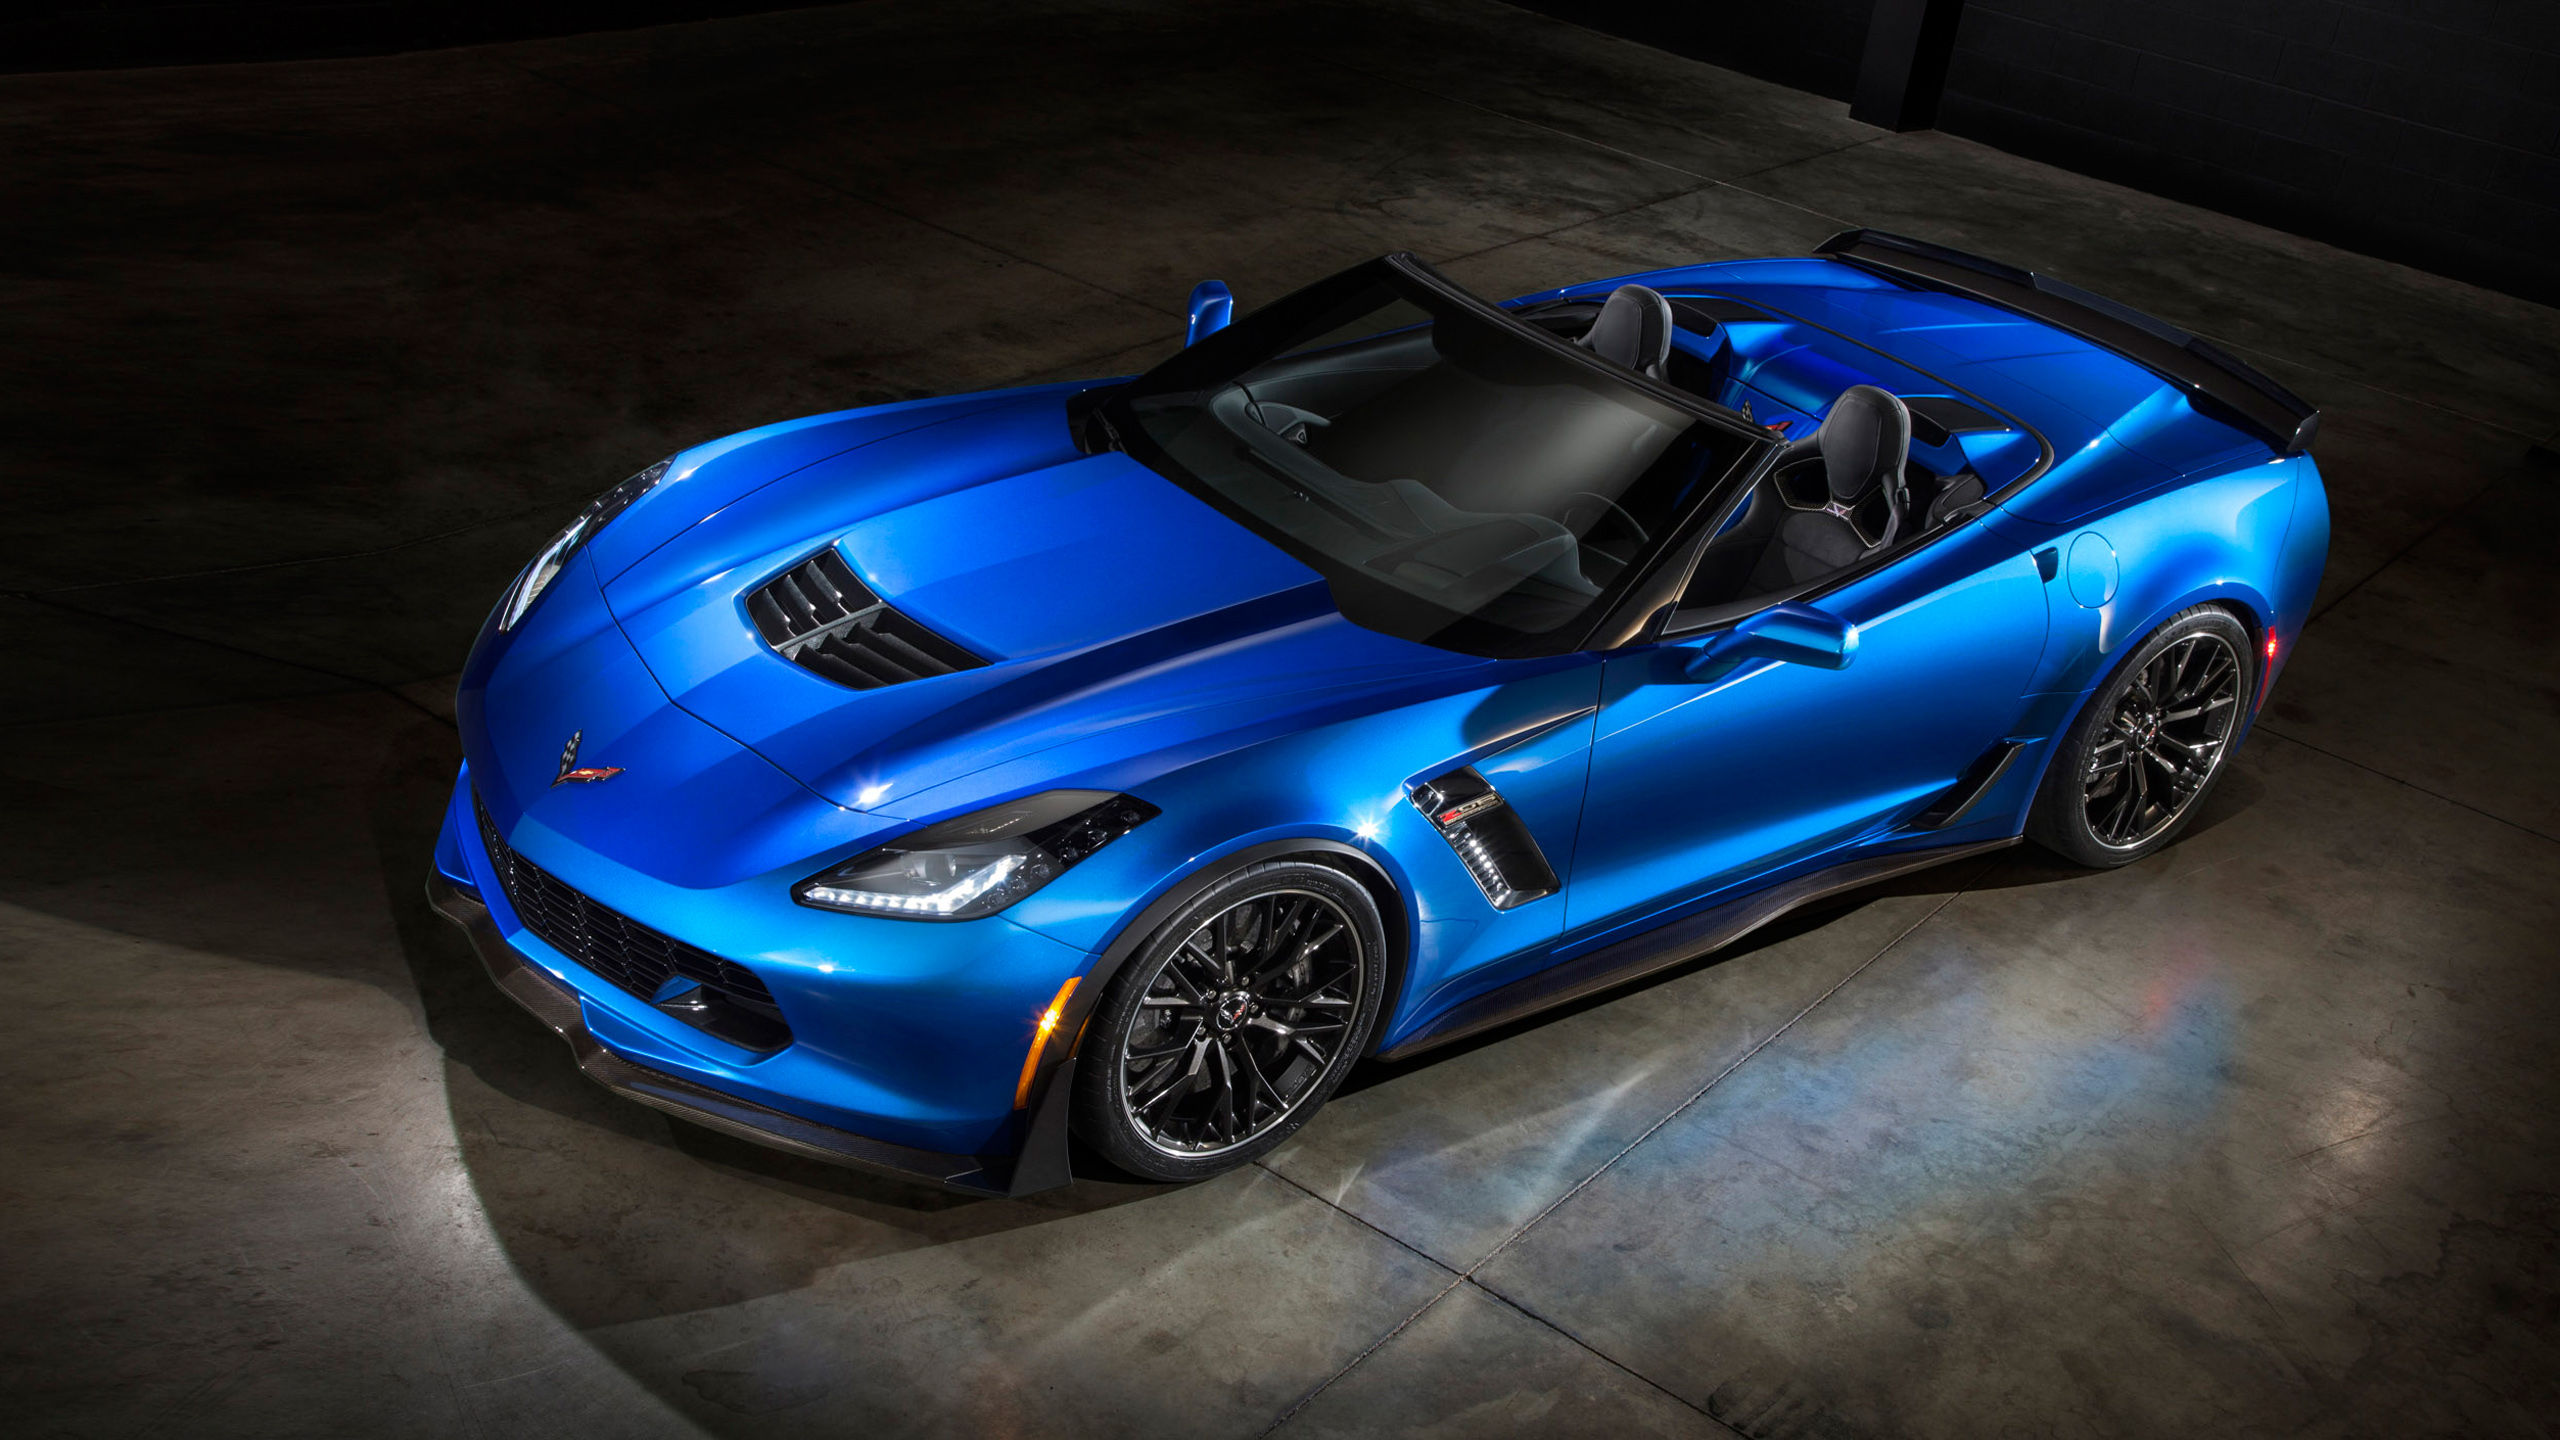 Chevrolet Corvette Z06 Convertible 2015 Wallpaper HD Car Wallpapers 2560x1440